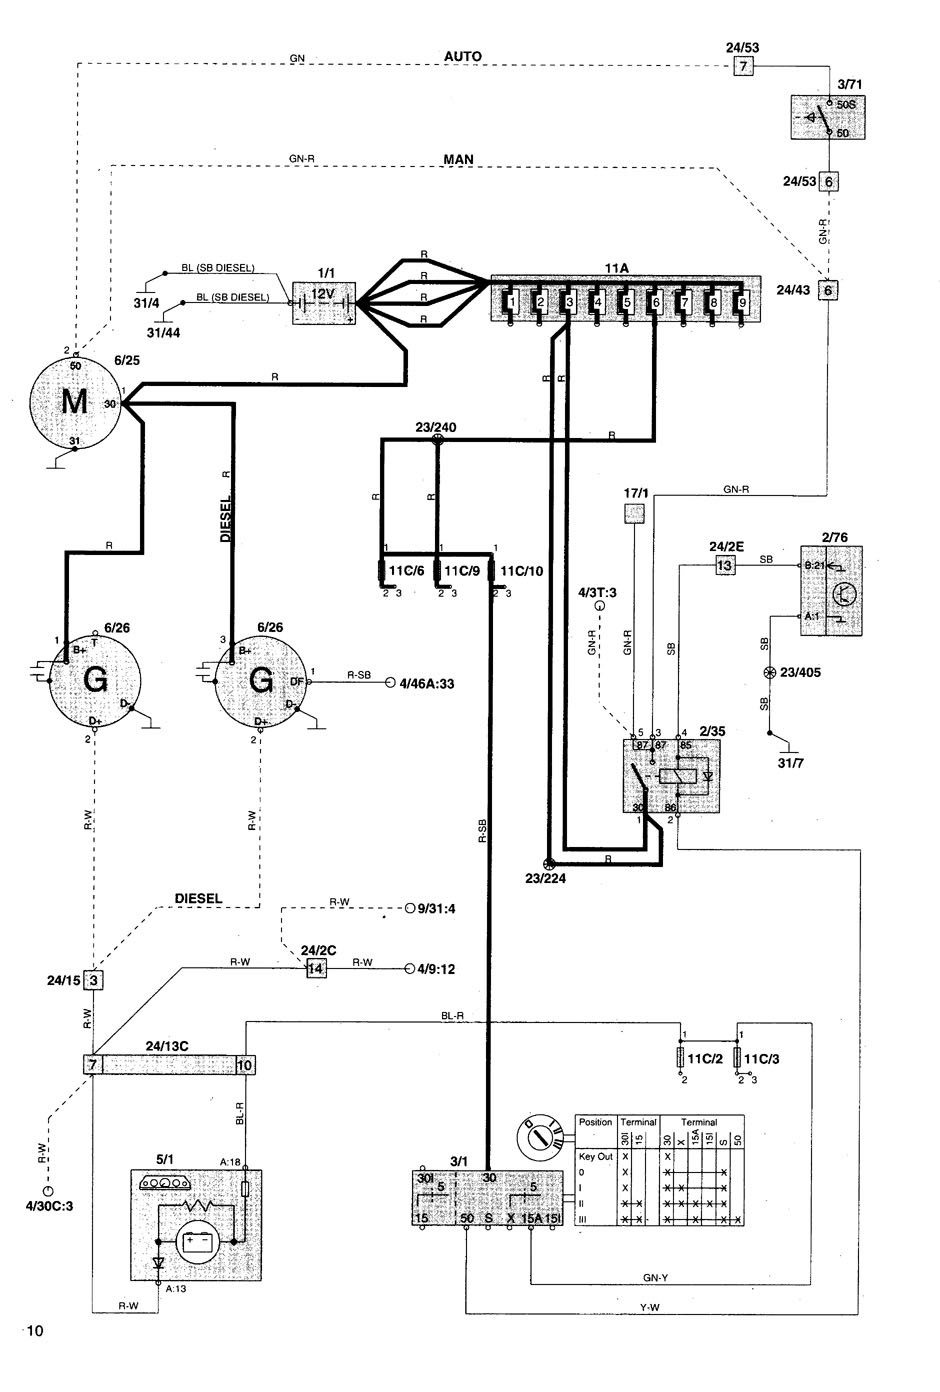 Amazing Volvo S70 System Wiring Diagram Pictures Best Image Wire